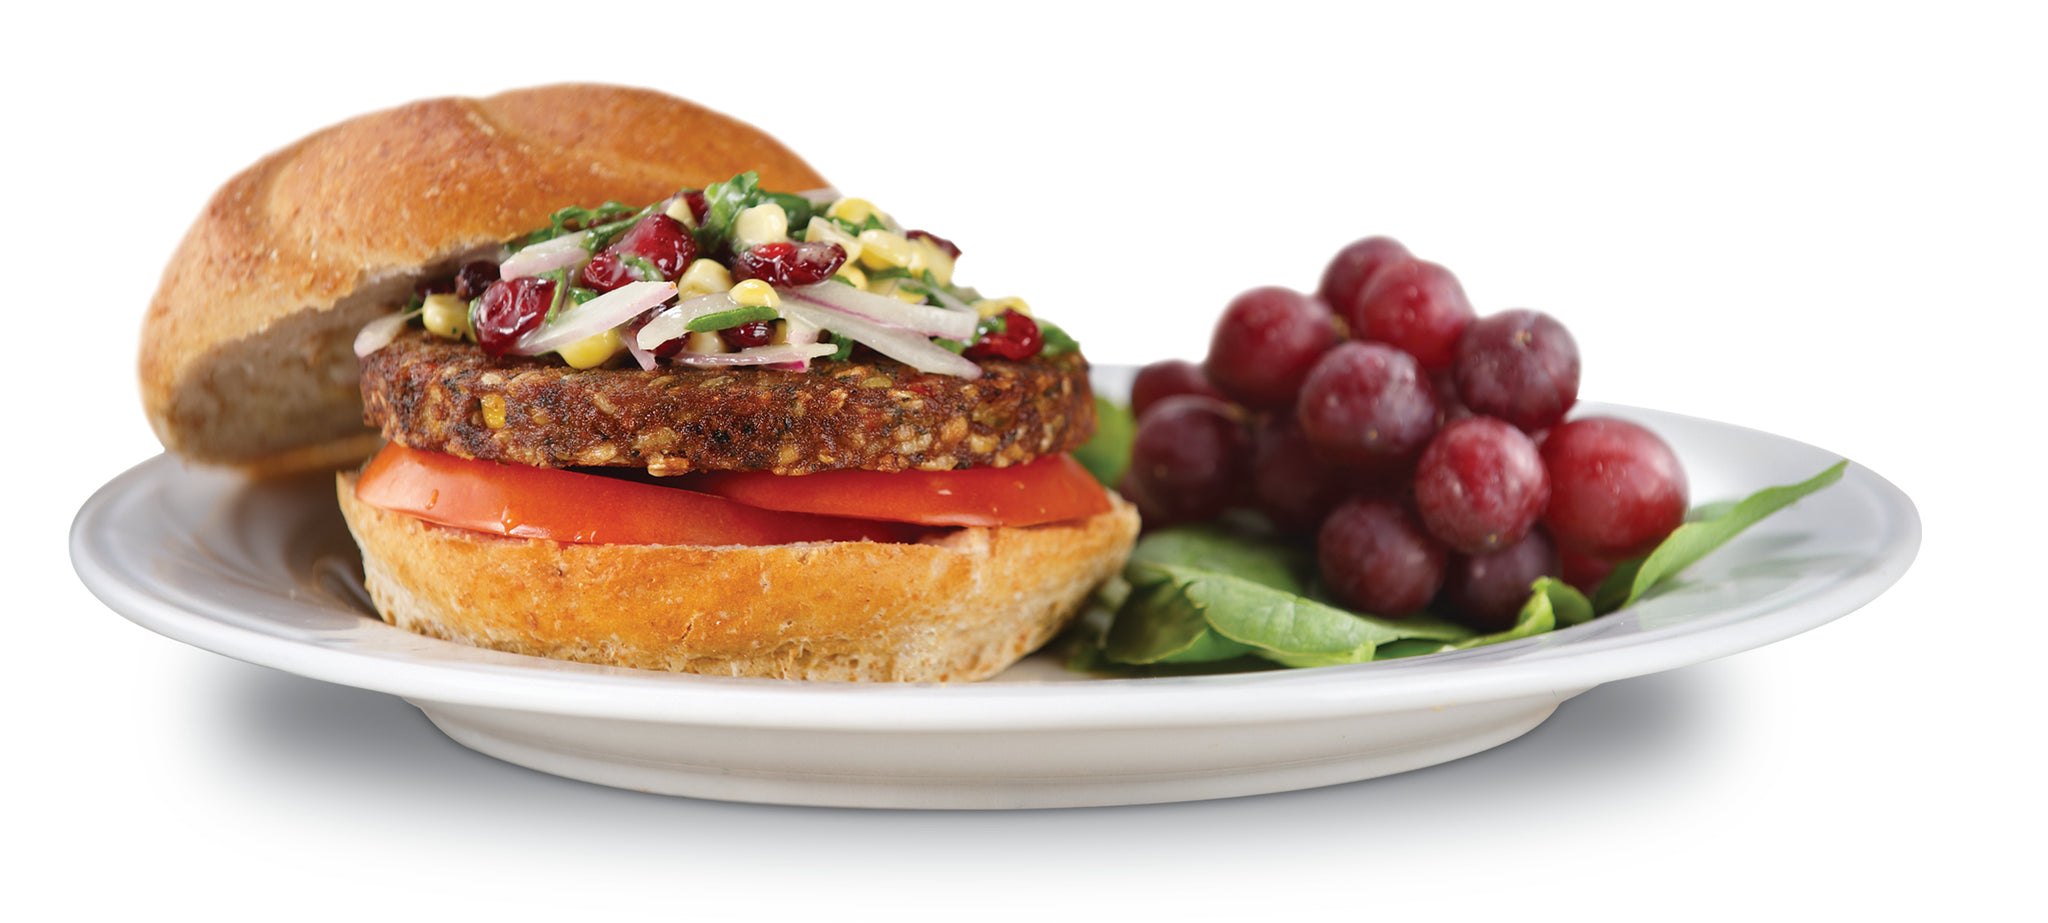 Gardenburger Frozen Malibu Veggie Burger 91 g - 48 Pack [$1.74/each]